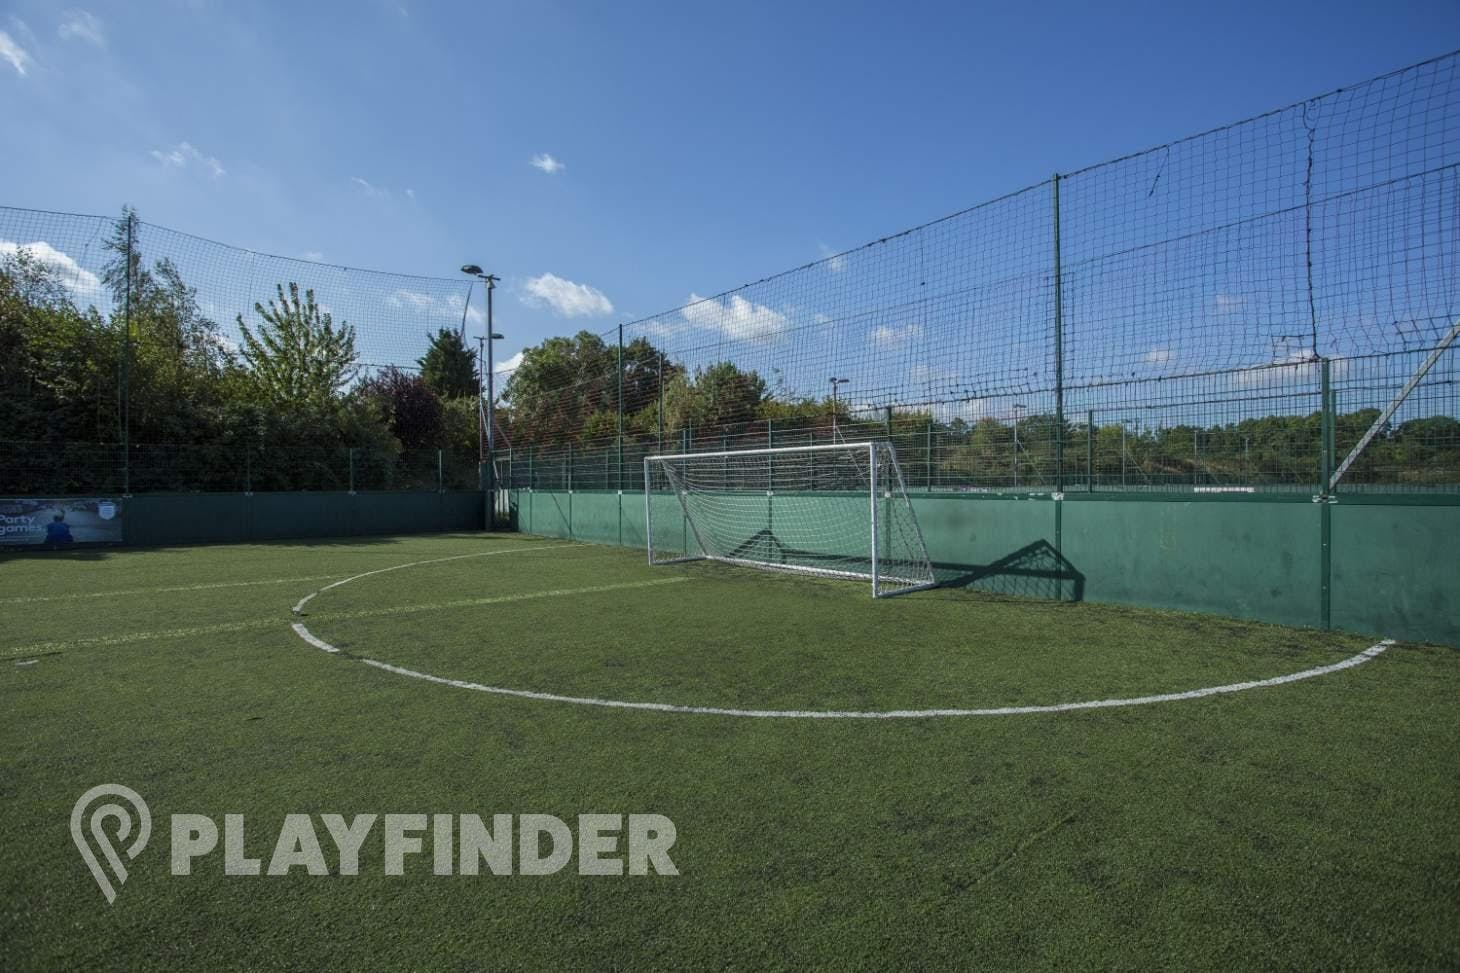 Powerleague Paisley 7 a side | 3G Astroturf football pitch